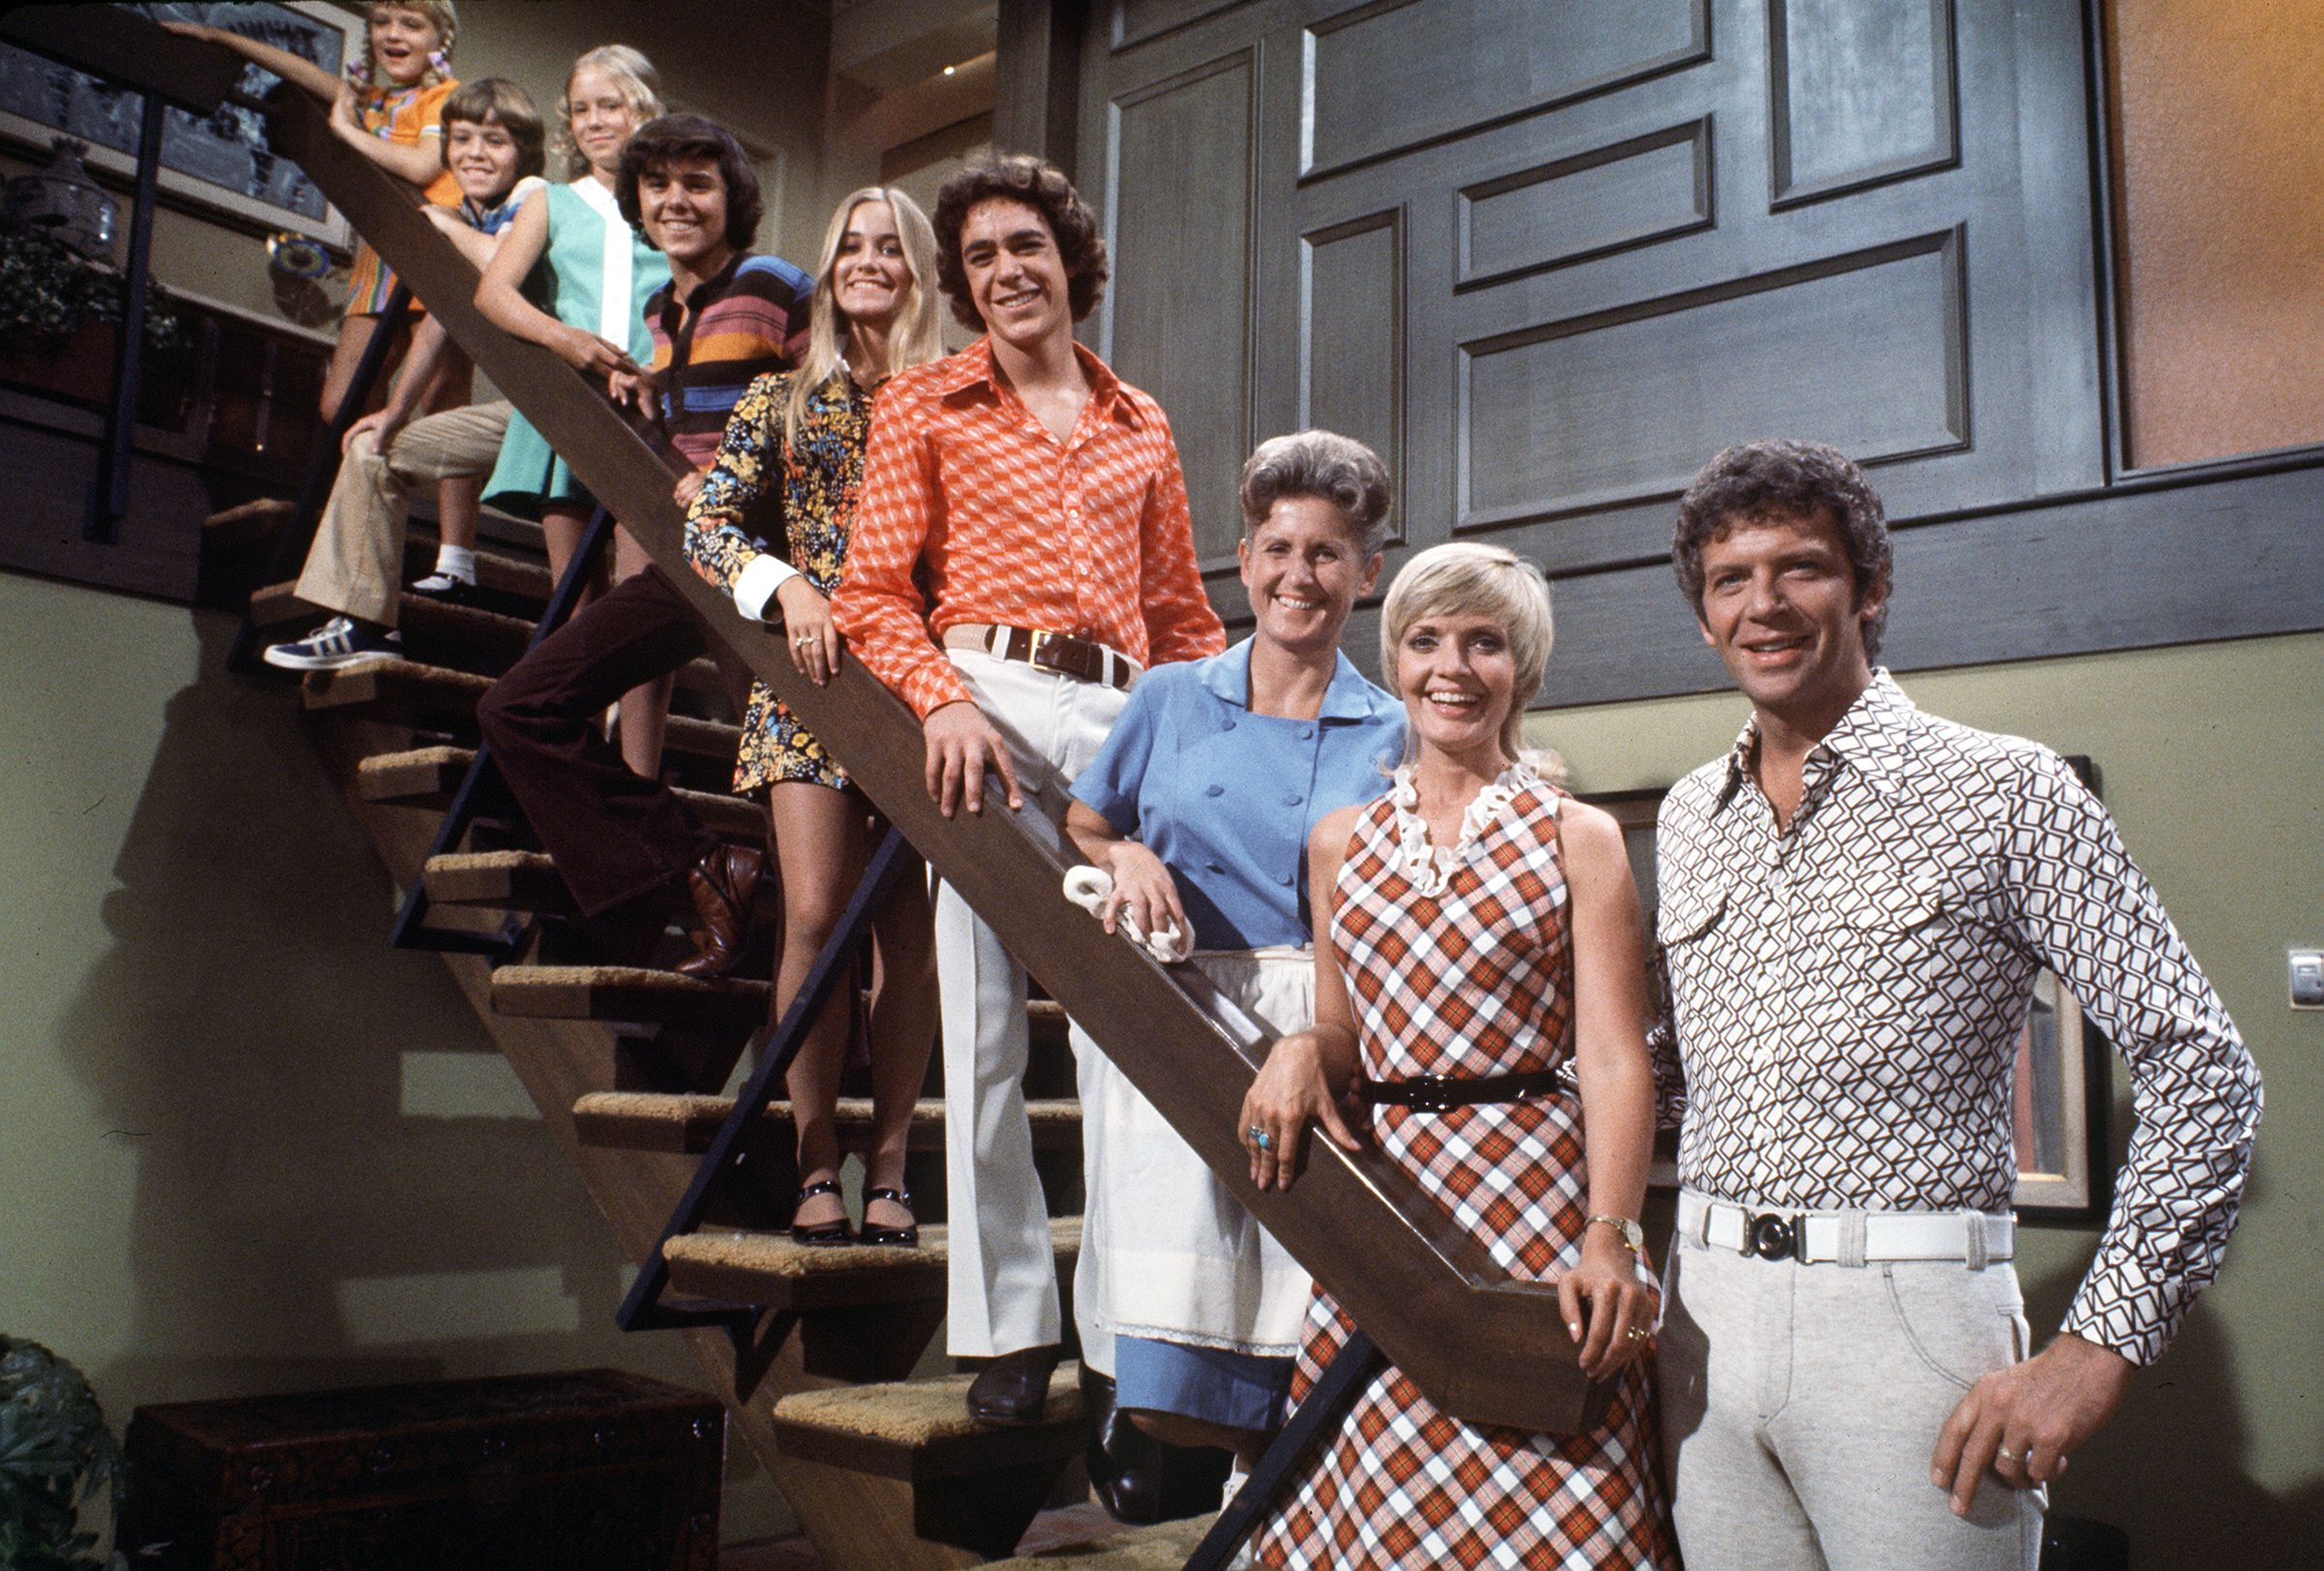 10 Quirks You Never Noticed About Classic TV Sitcom Homes